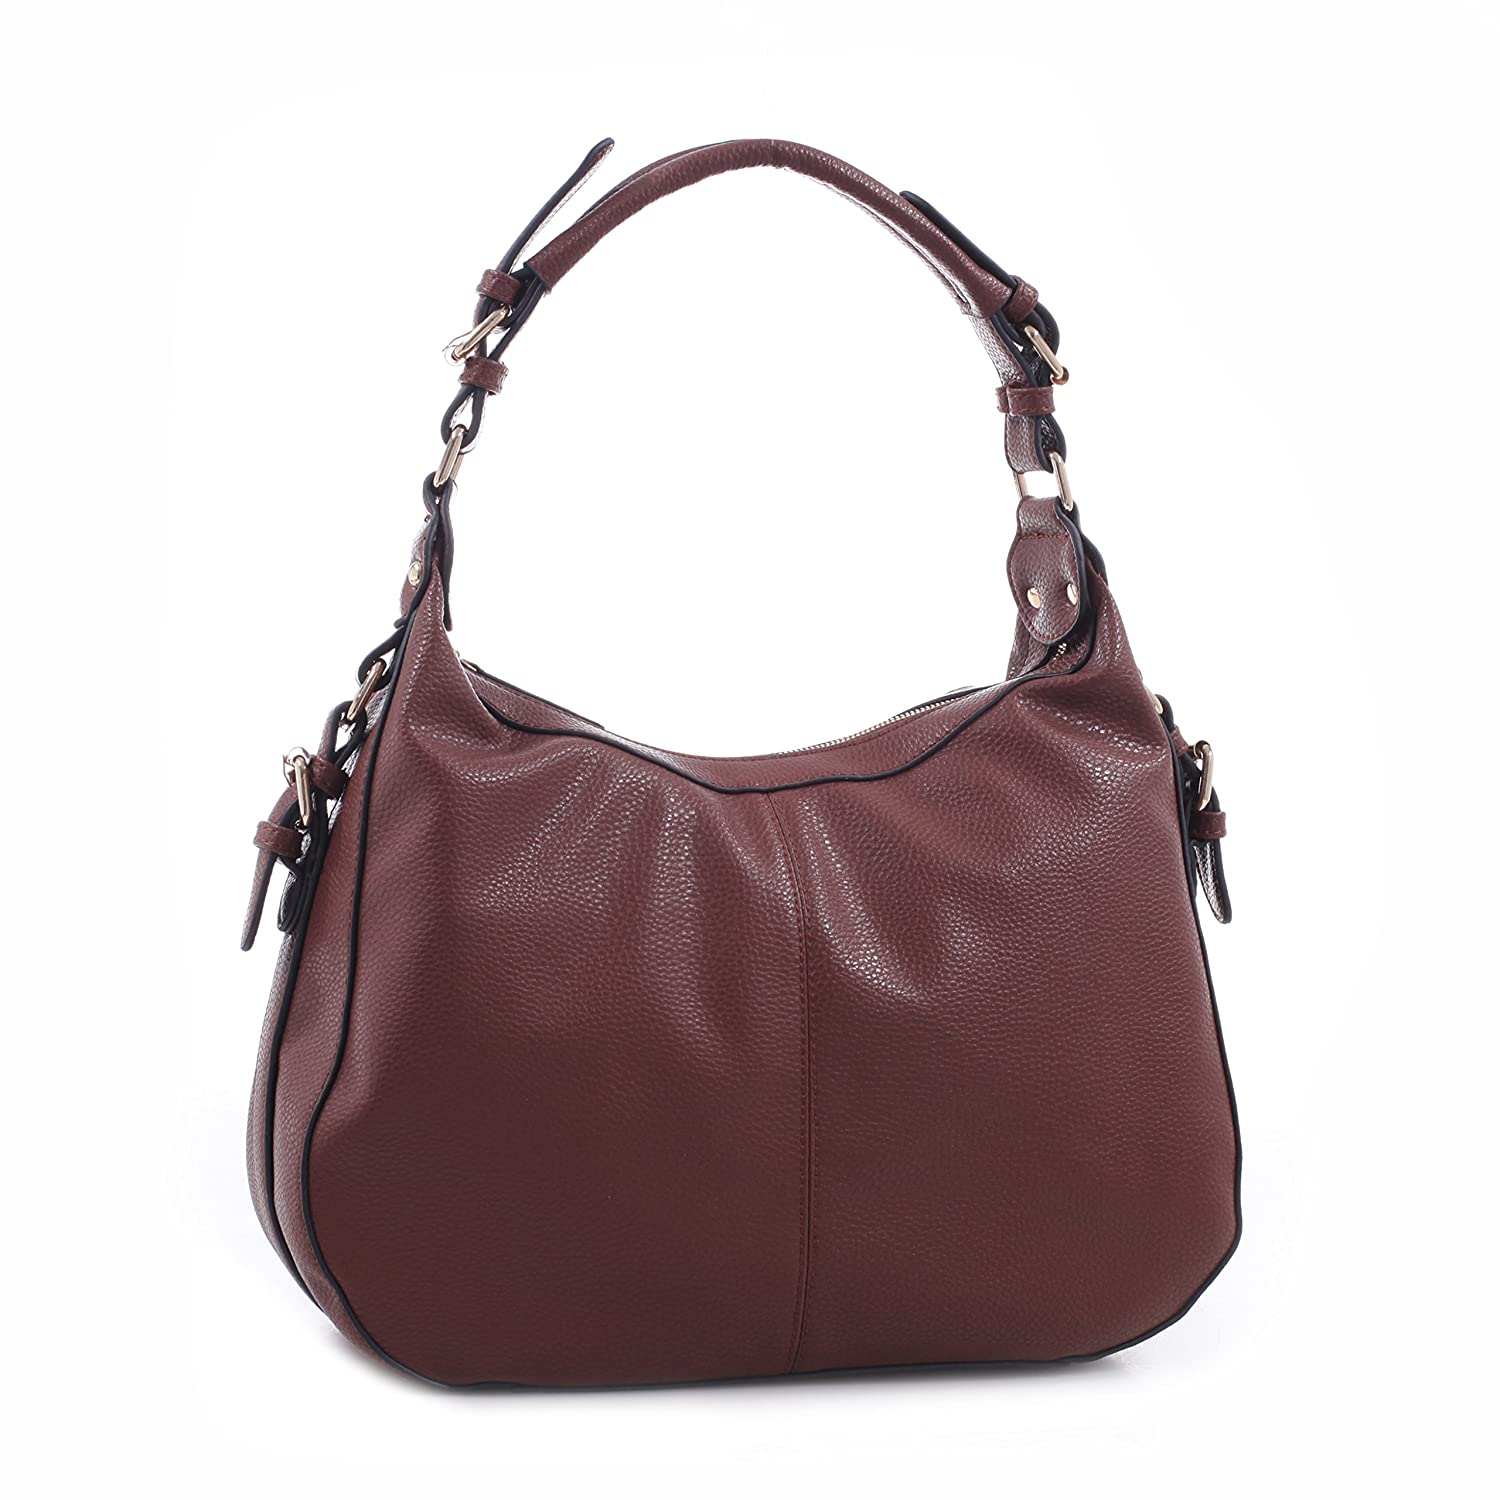 79ae399ccf4 Amazon.com: Concealed Carry Purse - Chloe Buckle Hobo by Emperia Outfitters  (Brown): Shoes